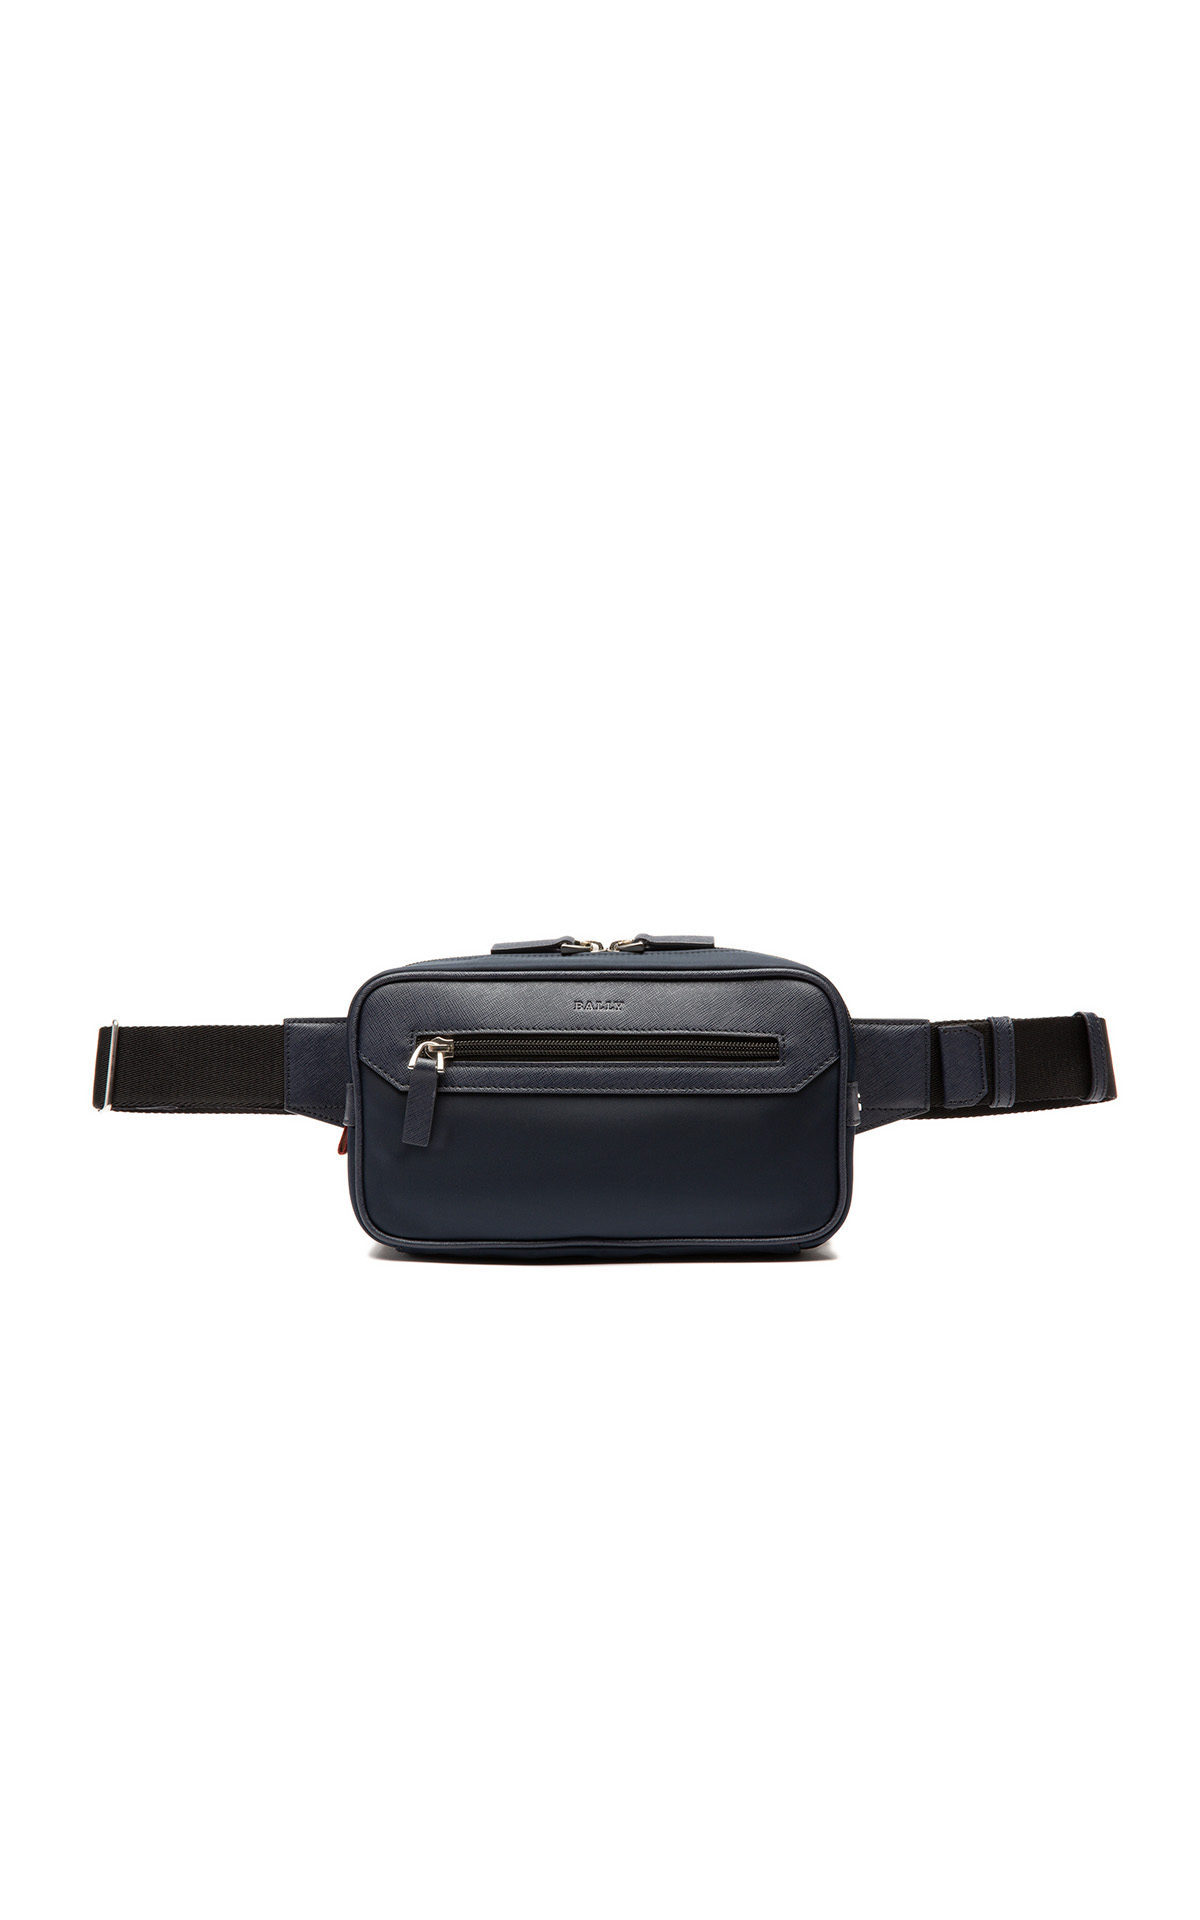 Bally Twister men's belt bag from Bicester Village